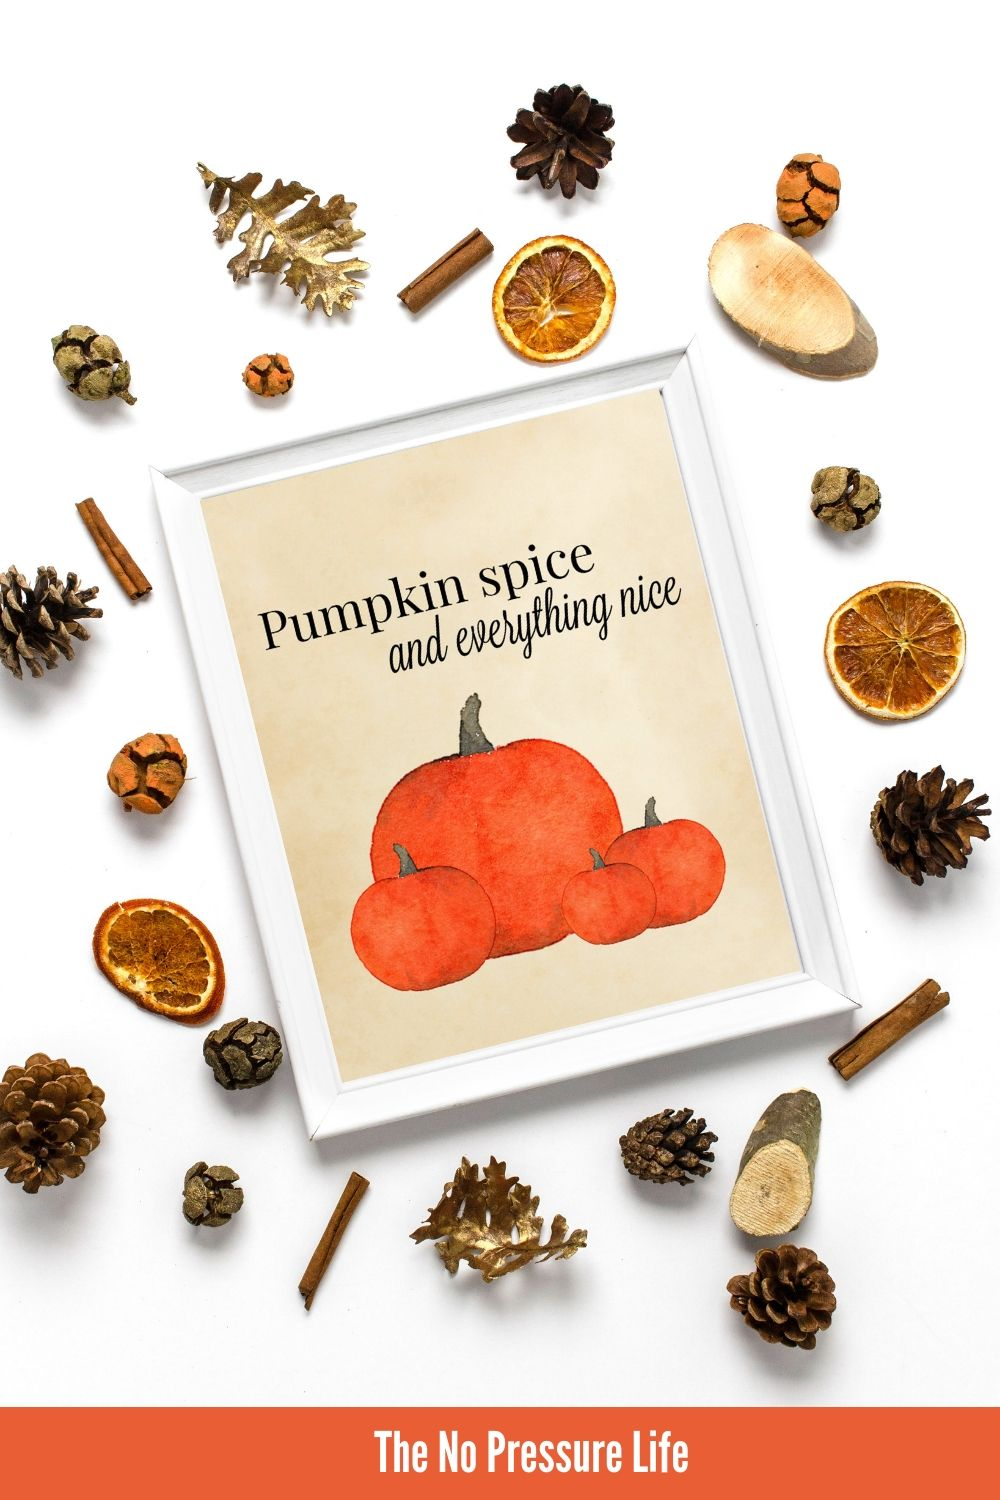 Pumpkin Spice and Everything Nicefree printable art in a white frame